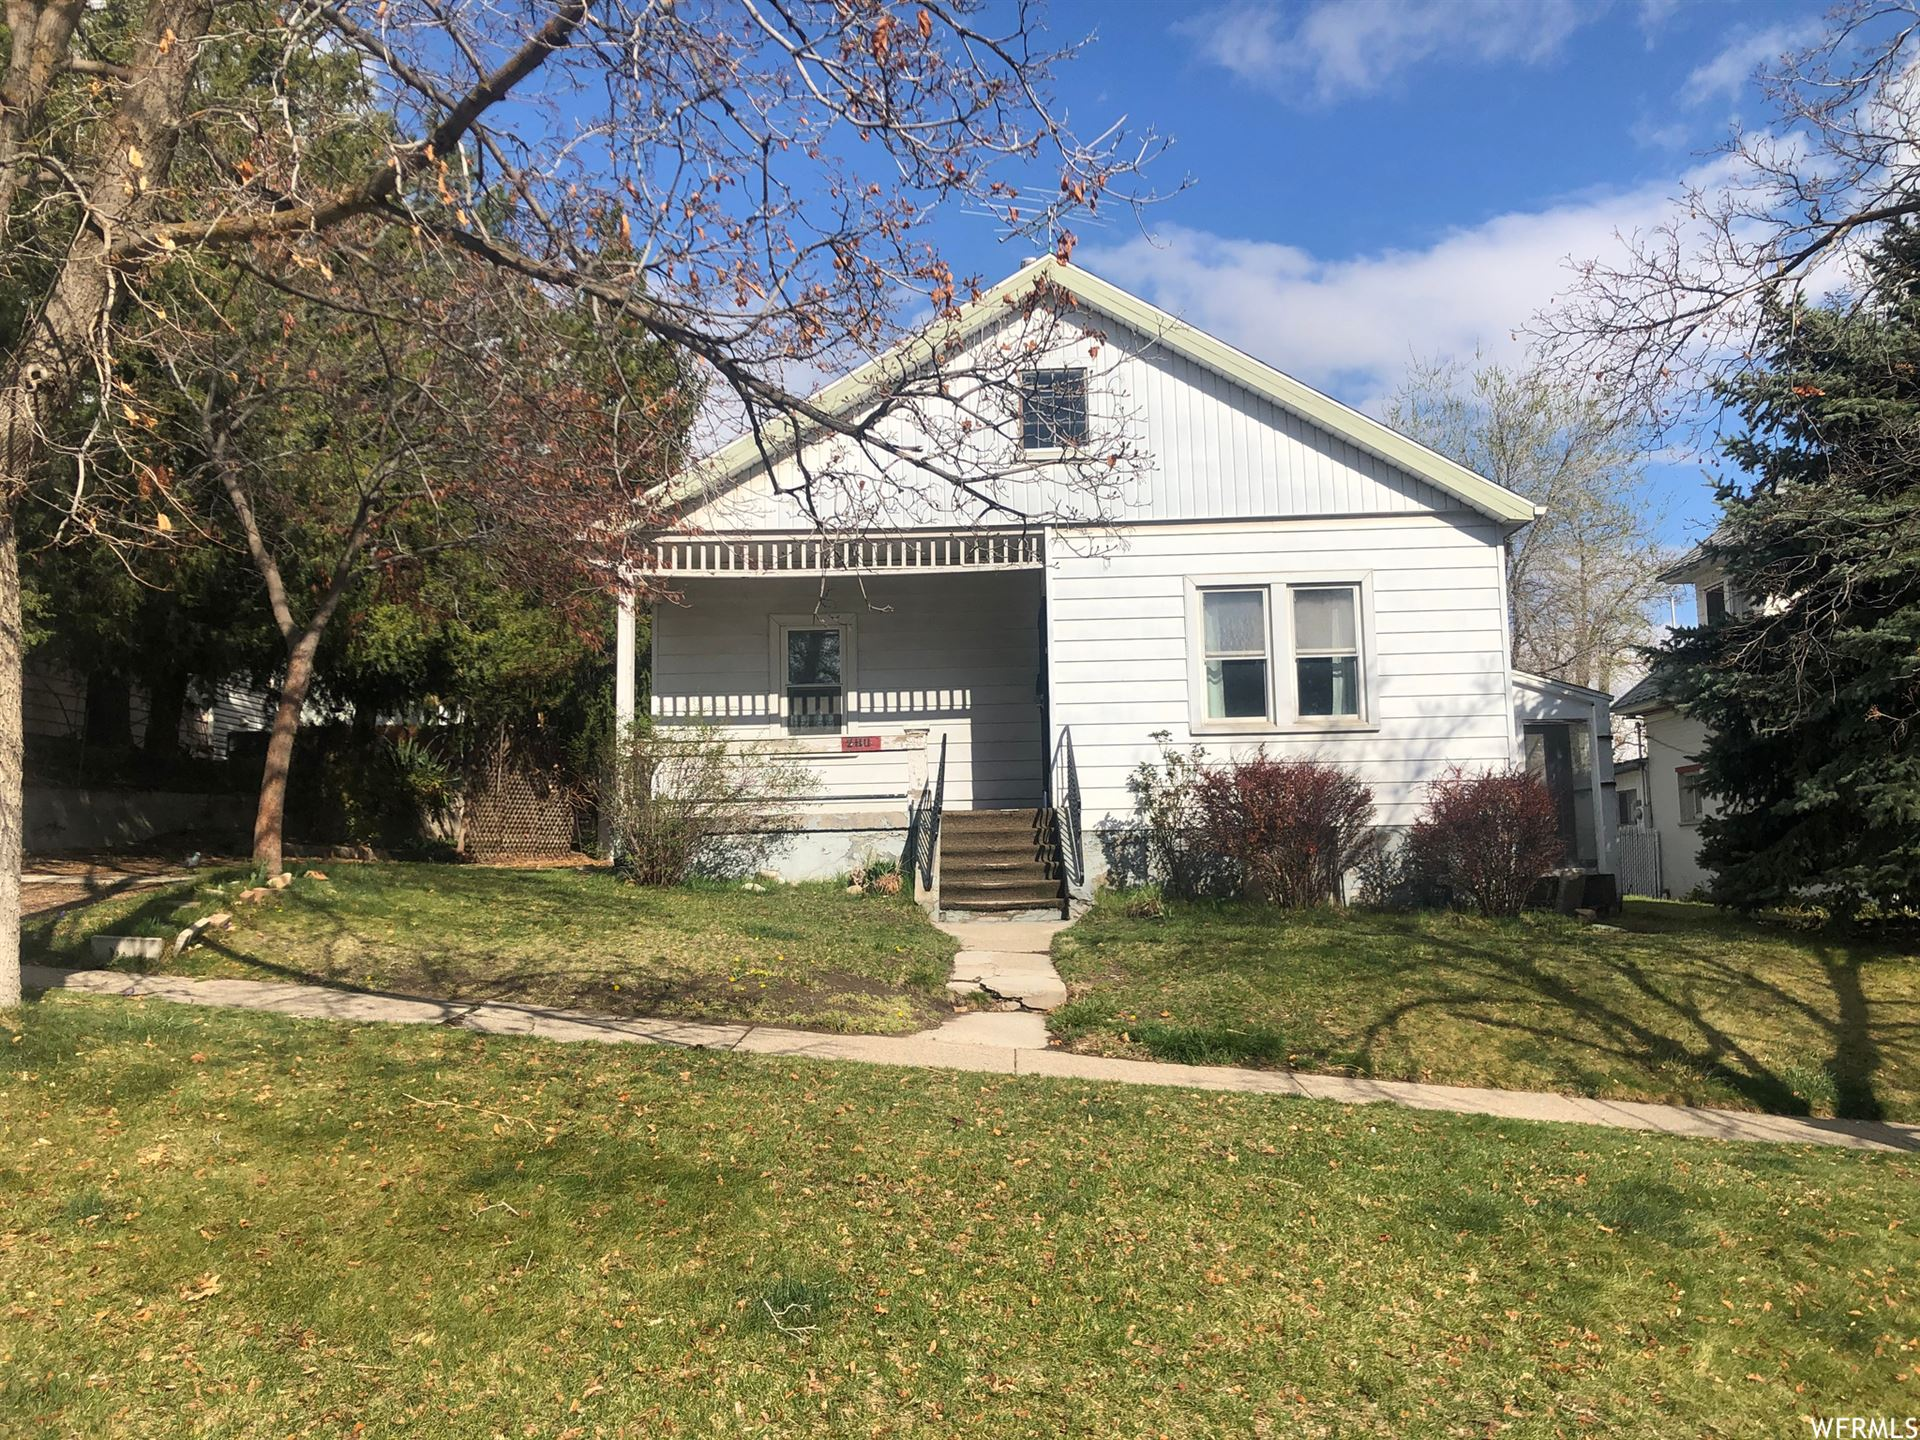 Photo of 280 N J E, Salt Lake City, UT 84103 (MLS # 1734232)